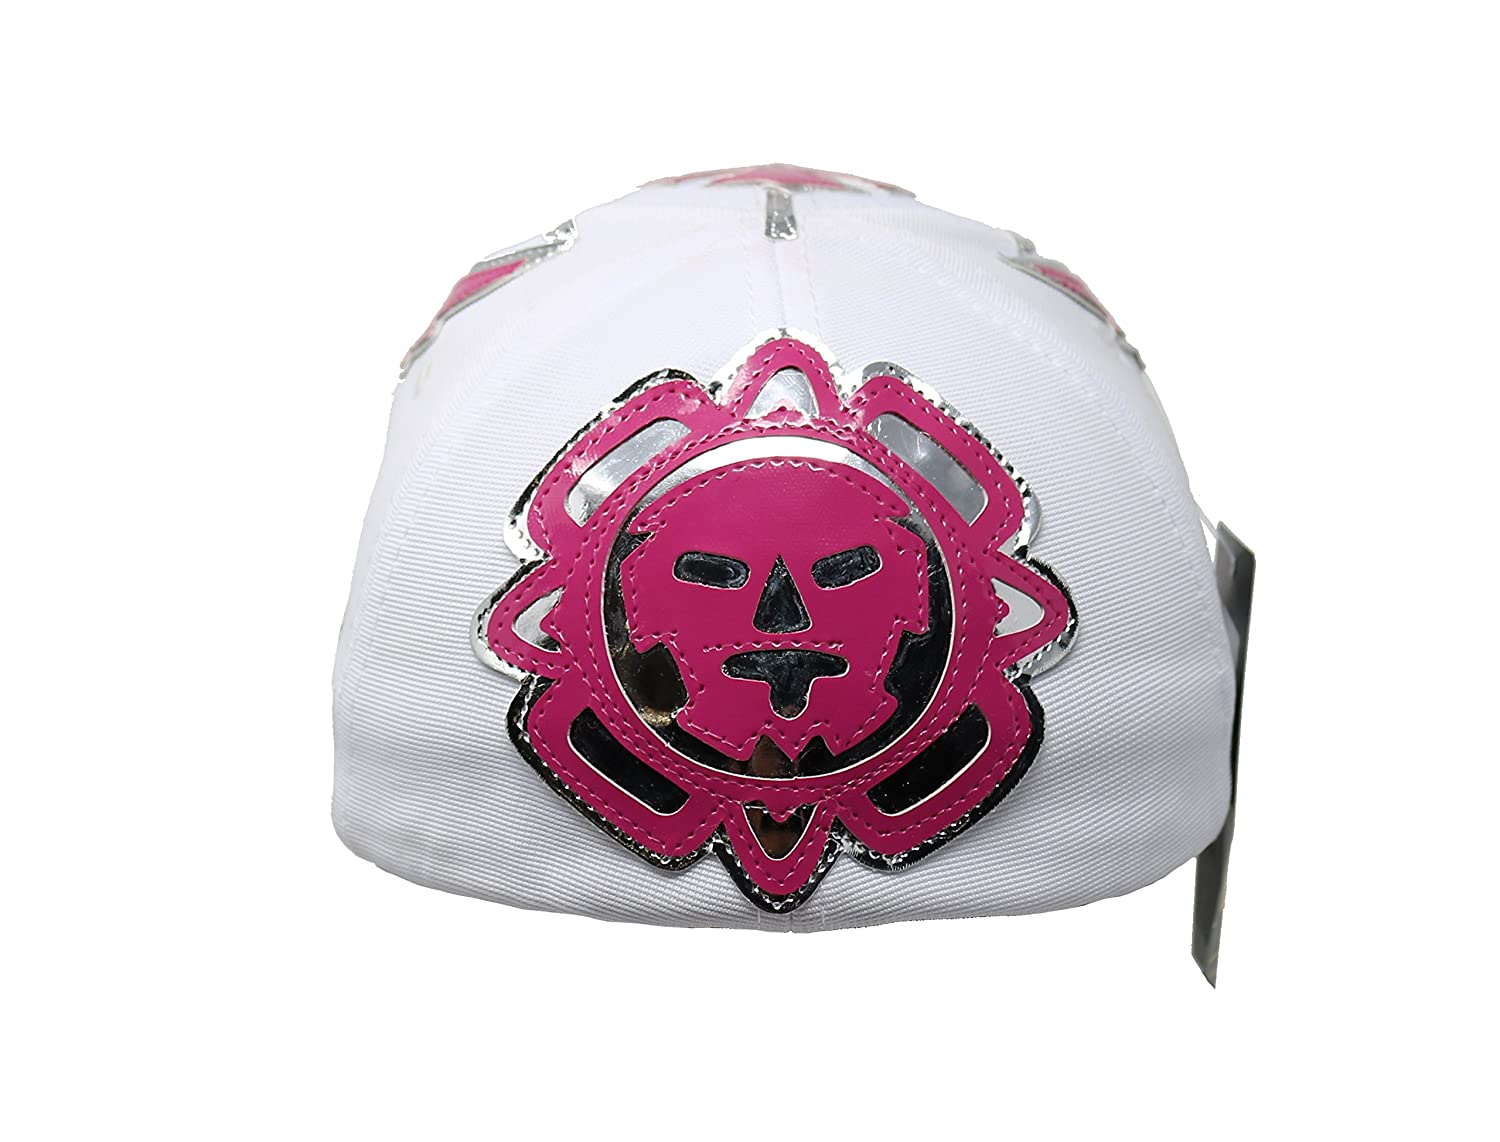 Heroes Of Lucha Libre Rey Mysterio Adult Unisex Stretch Fit Hat (Black) at Amazon Mens Clothing store: